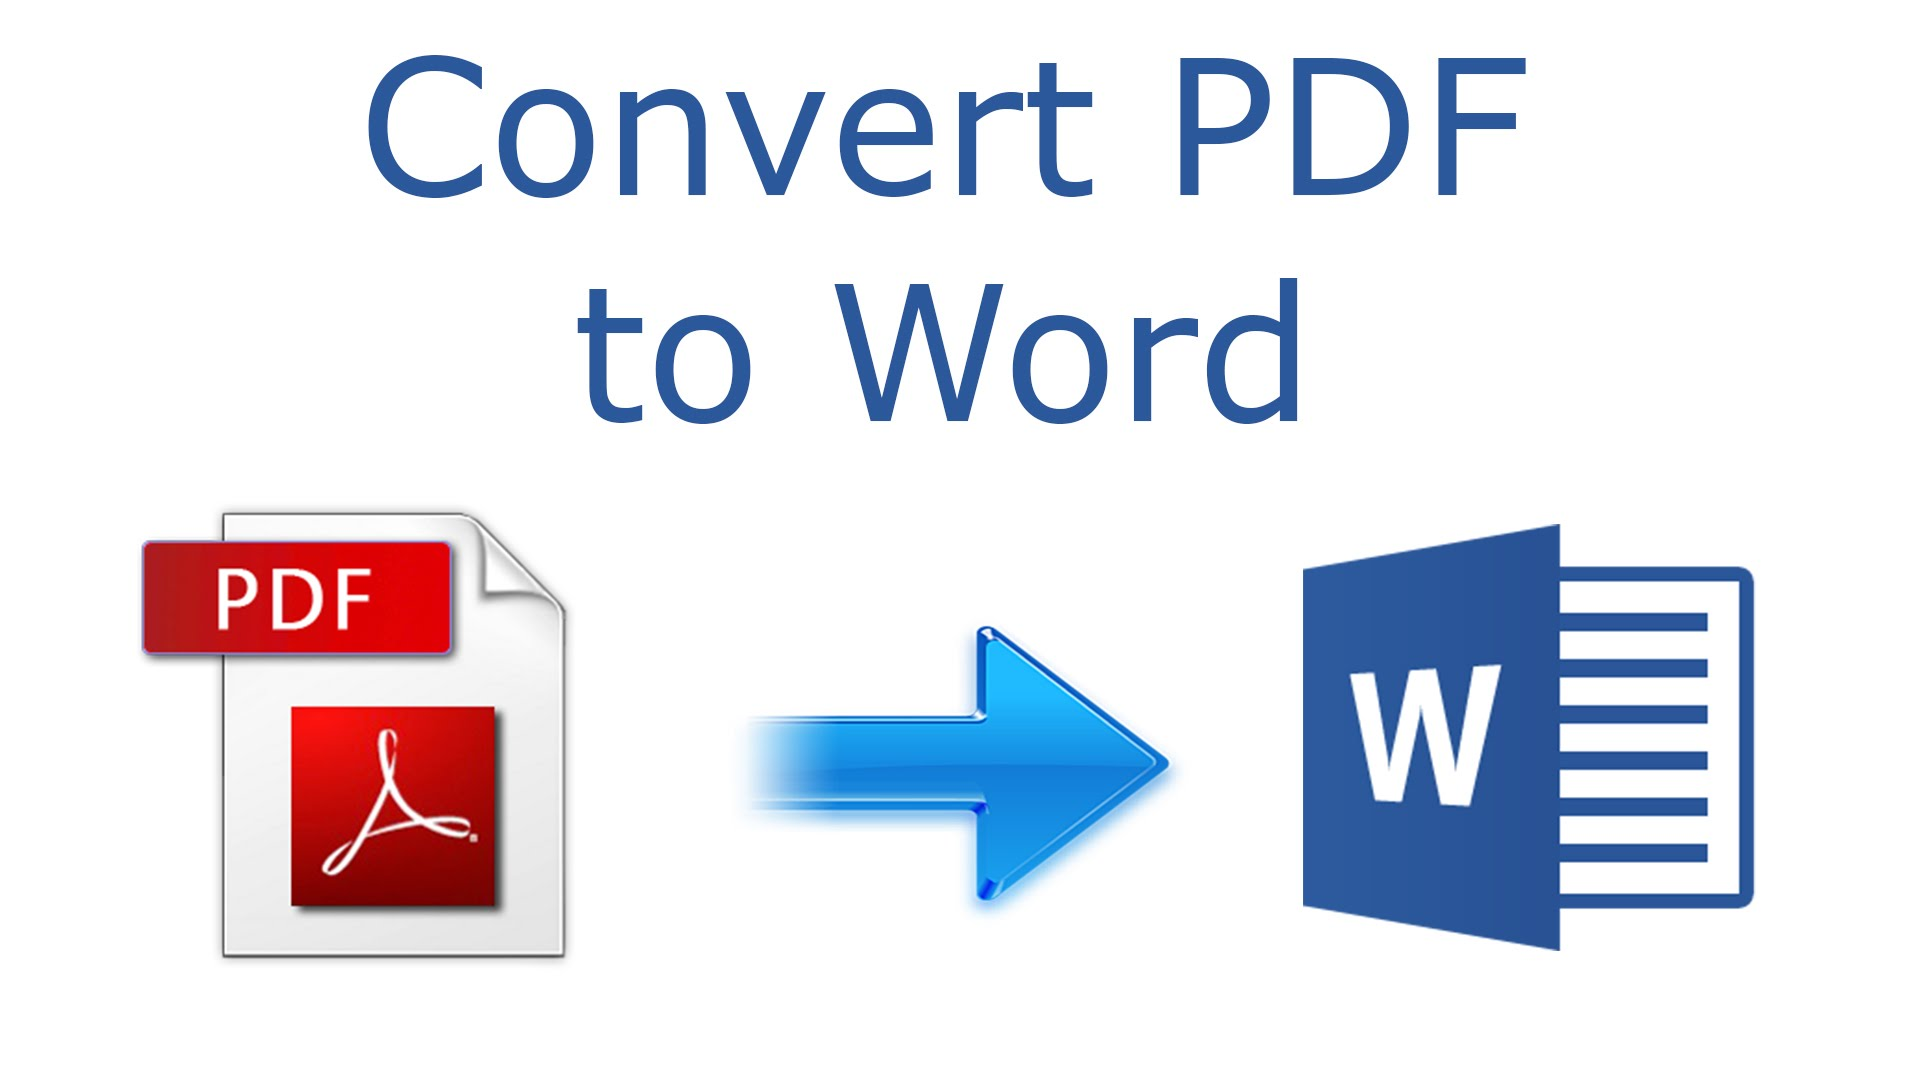 Convert PDF file to MS WORD for $5